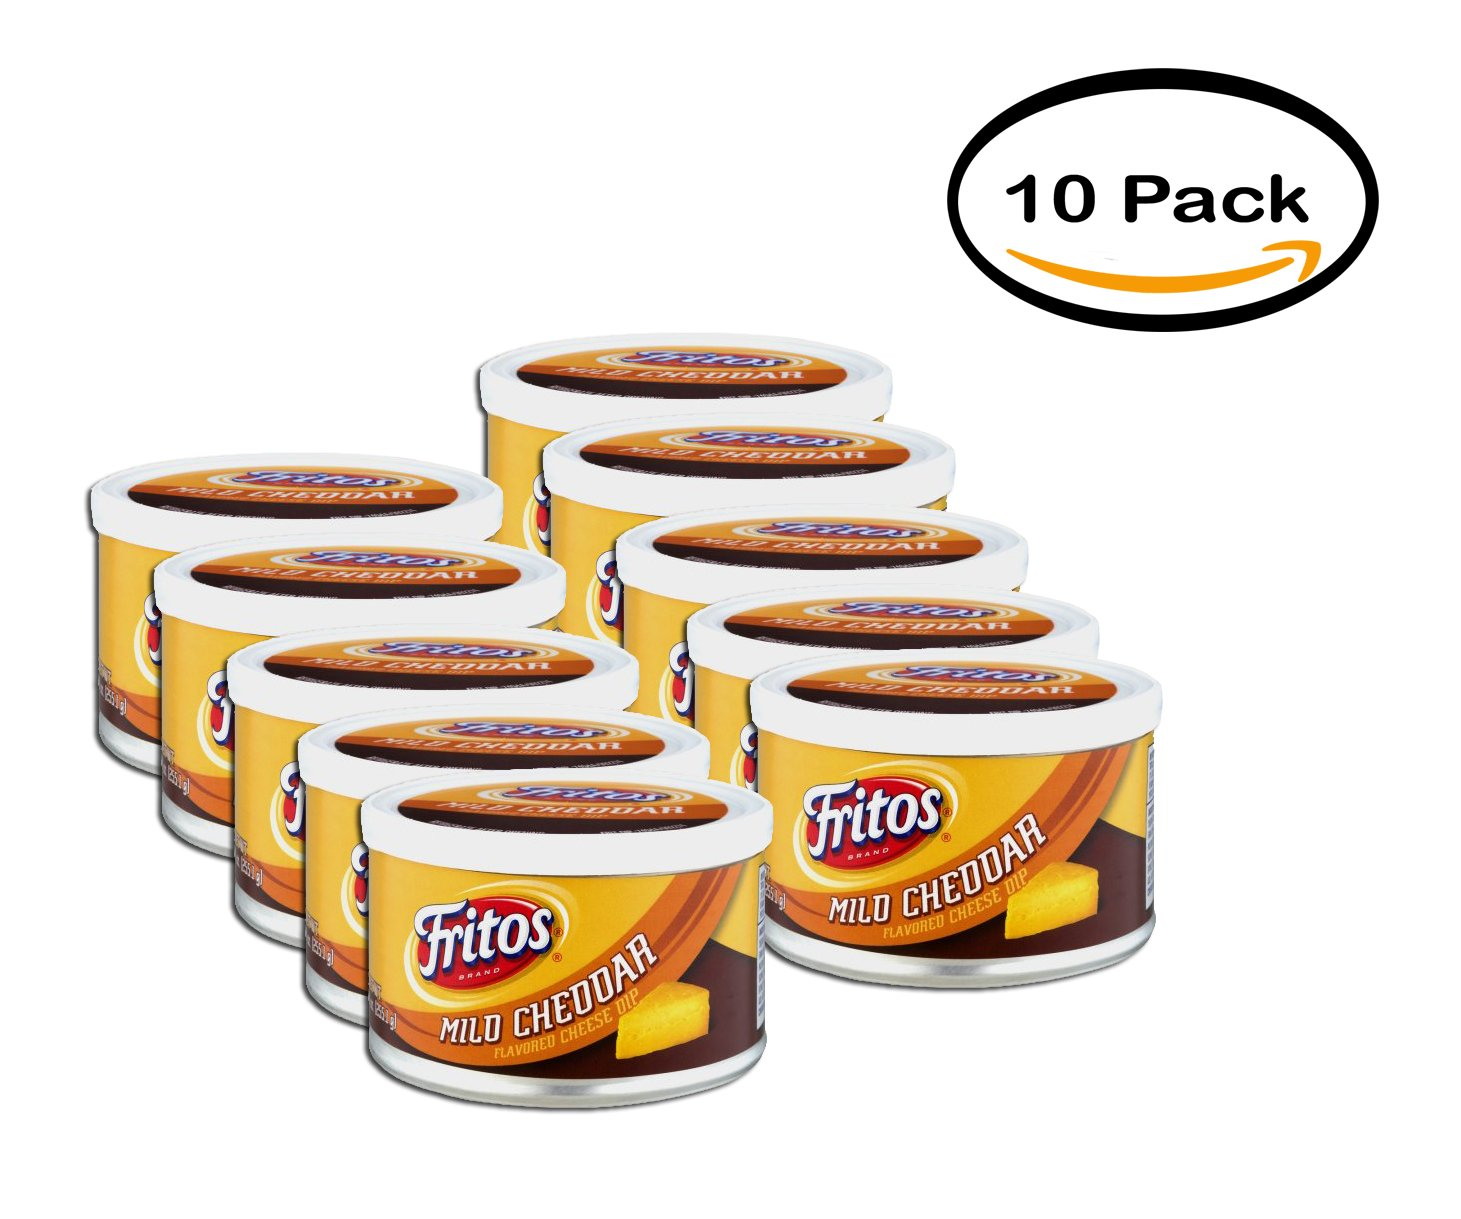 PACK OF 10 - Fritos Mid Cheddar Flavored Cheese Dip, 9 oz